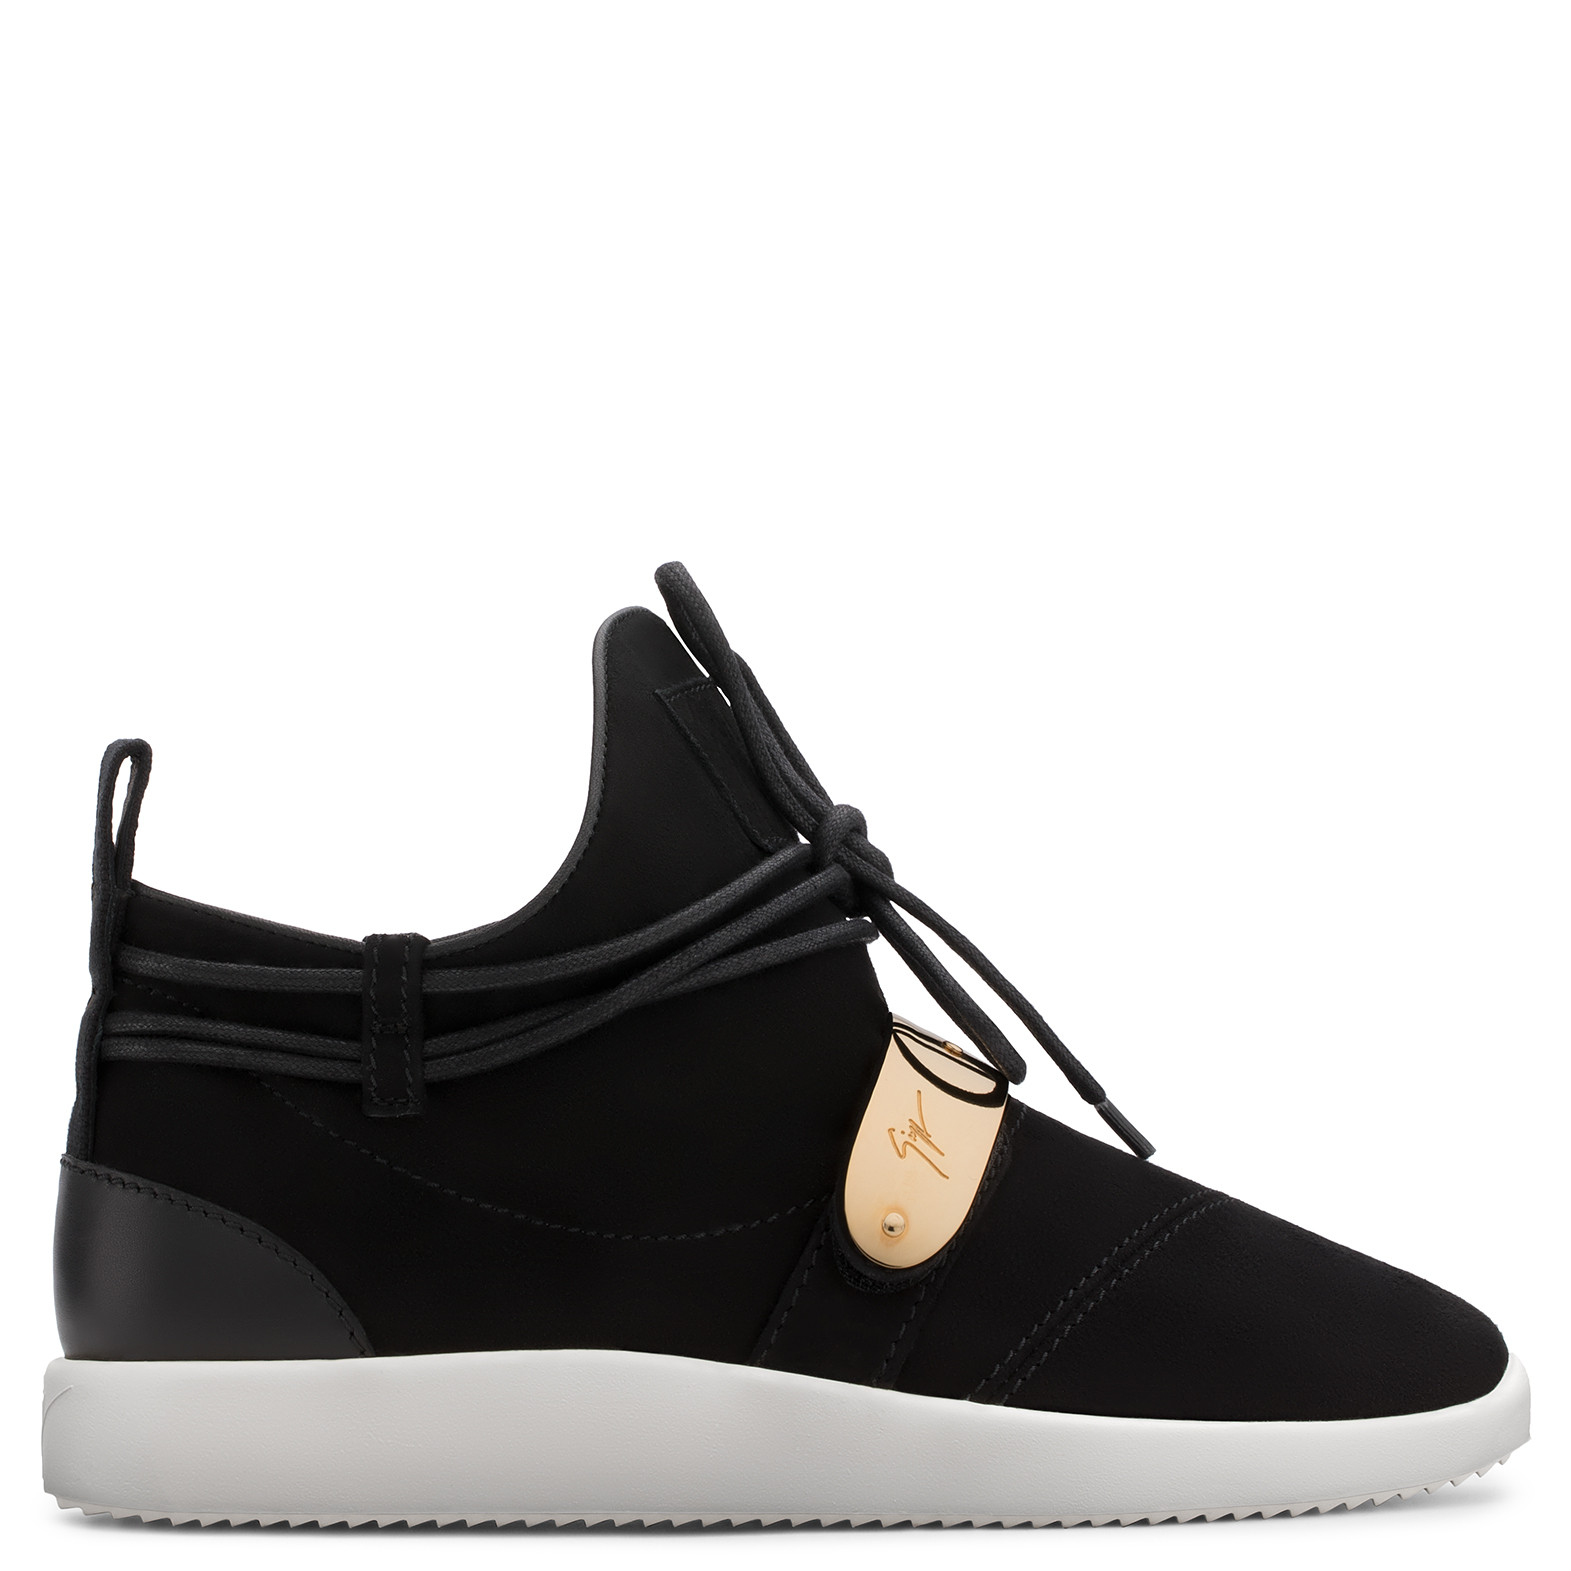 - BLACK SUEDE SNEAKER WITH METAL ACCESSORY HAYDEN